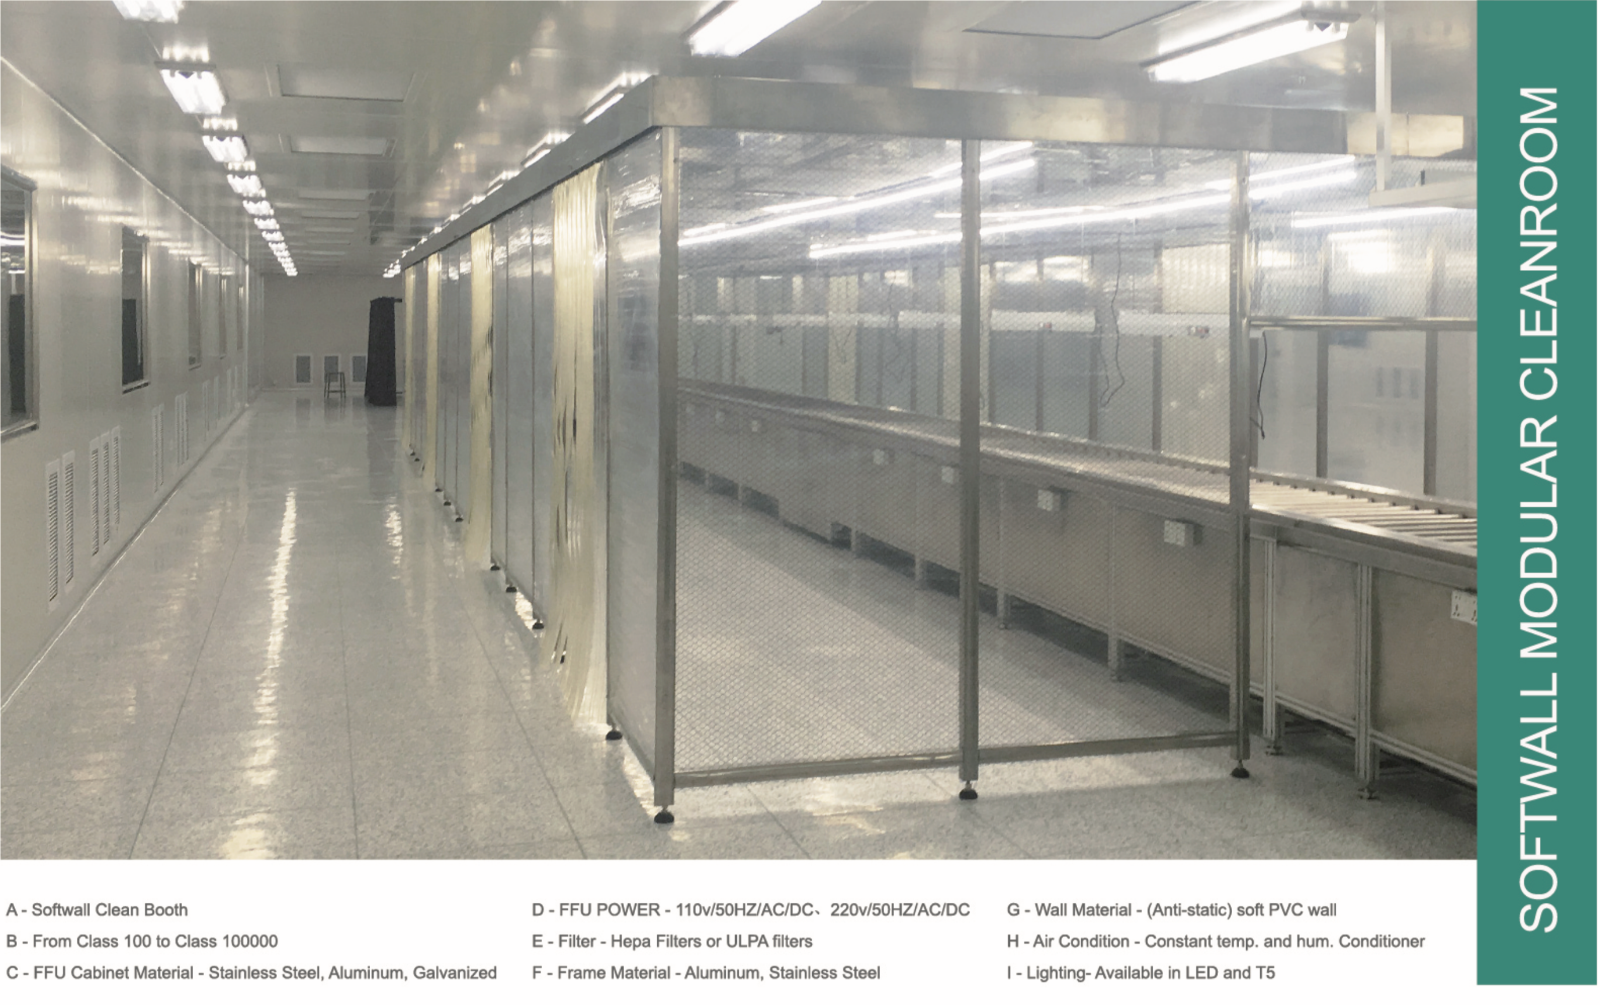 Cleanroom for sale clean room class 100 -100,000 / ISO 5 - ISO 8 | Shopping  Bin - Search eBay faster